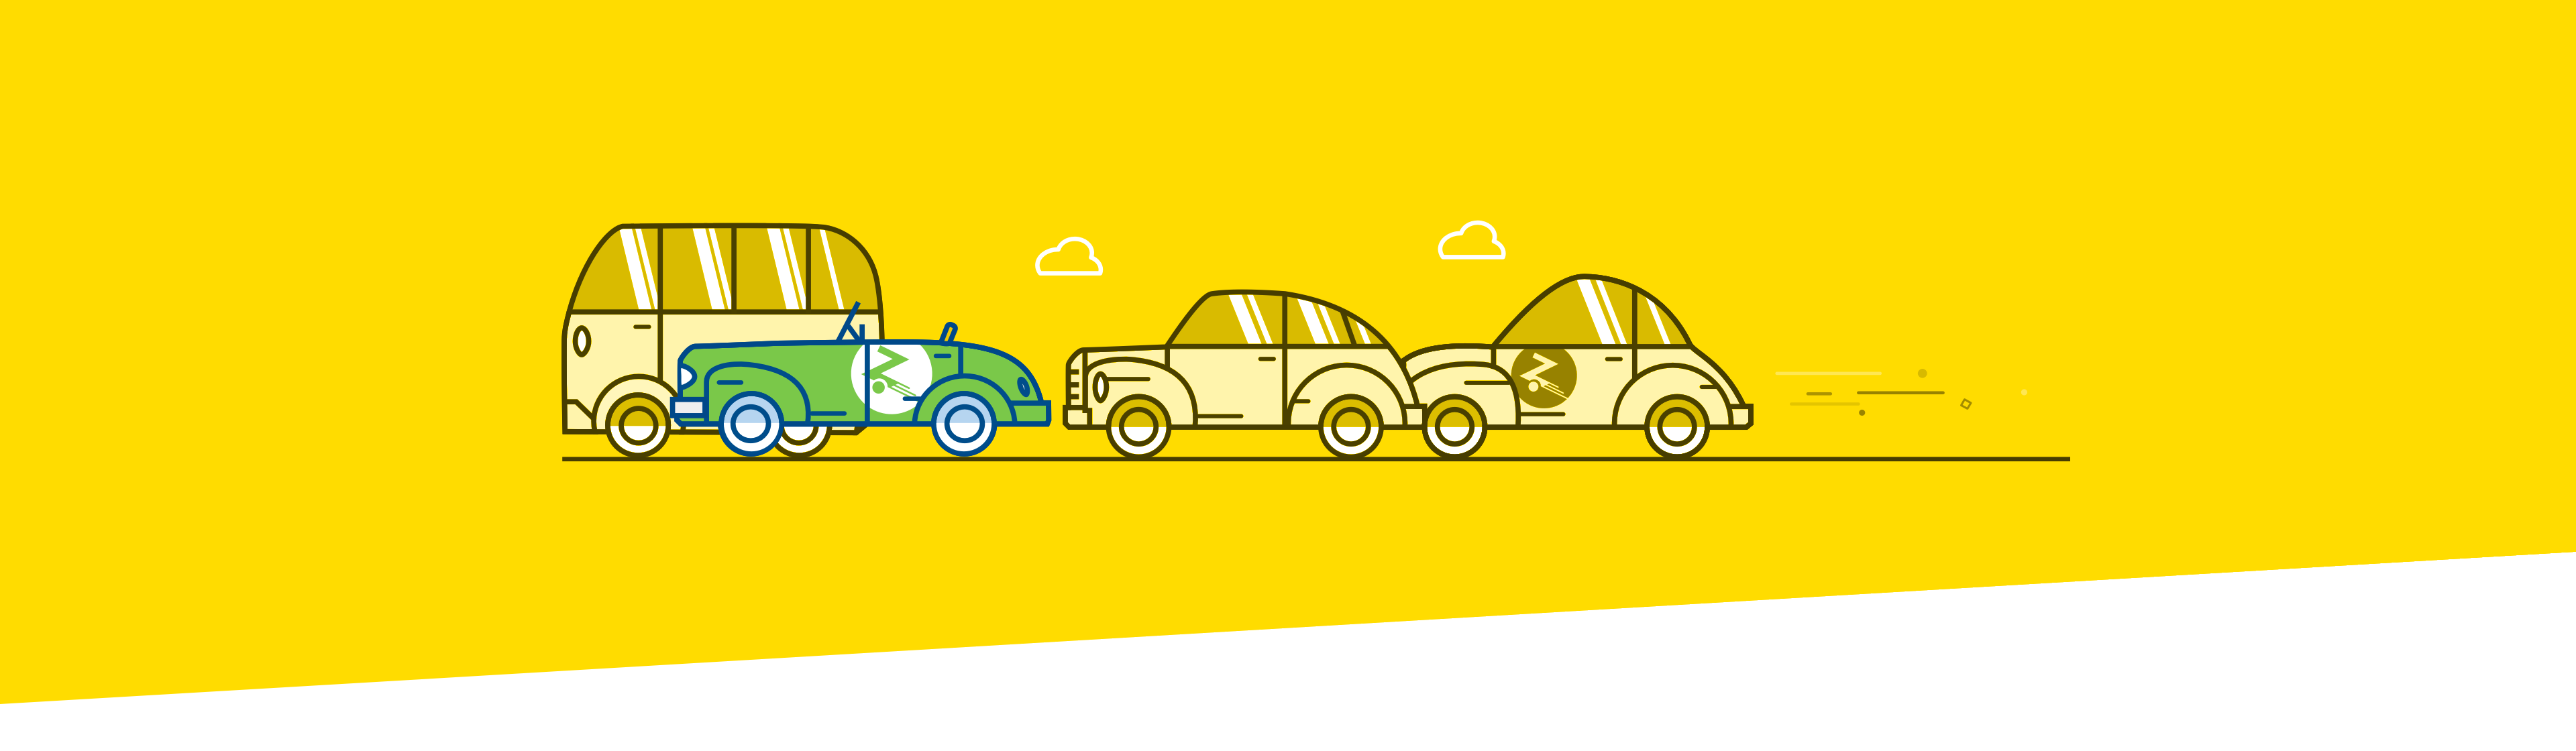 Yellow background with cartoon cars driving across